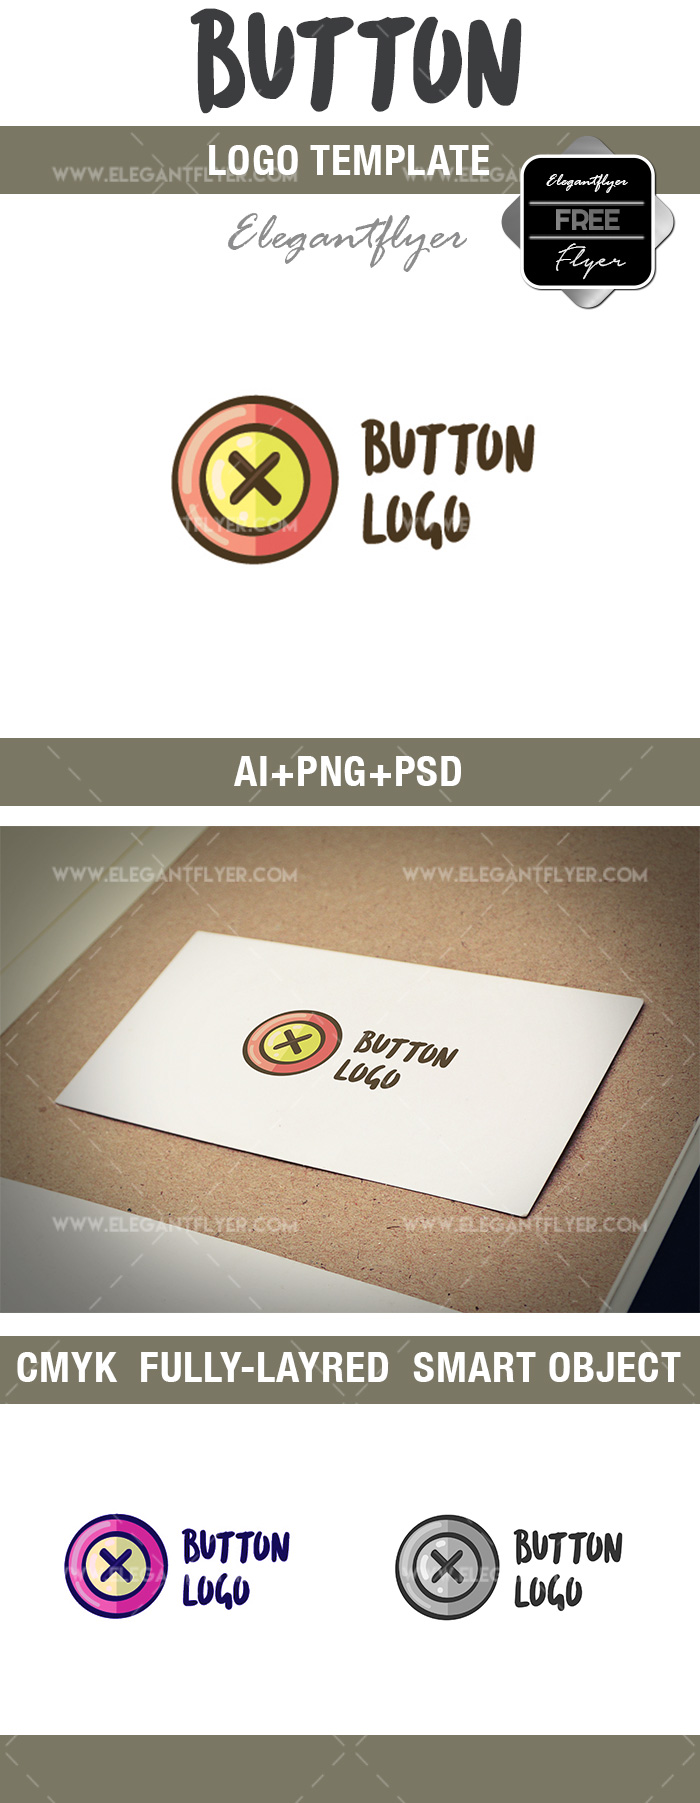 Button – Free Logo Template